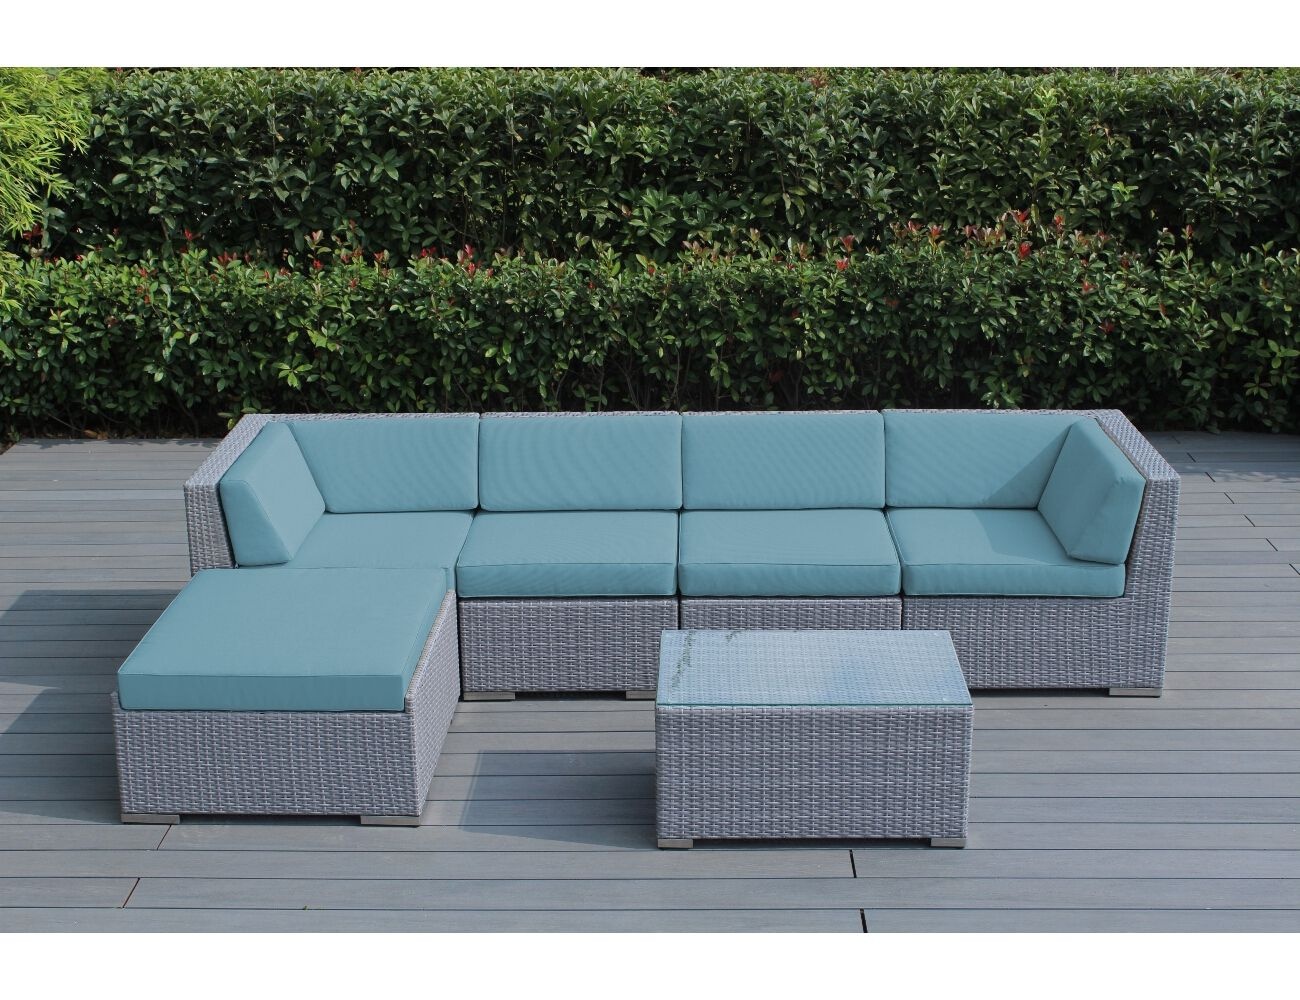 All weather outdoor furniture sunbrella mineral blue with gray wicker ohana deep seating set